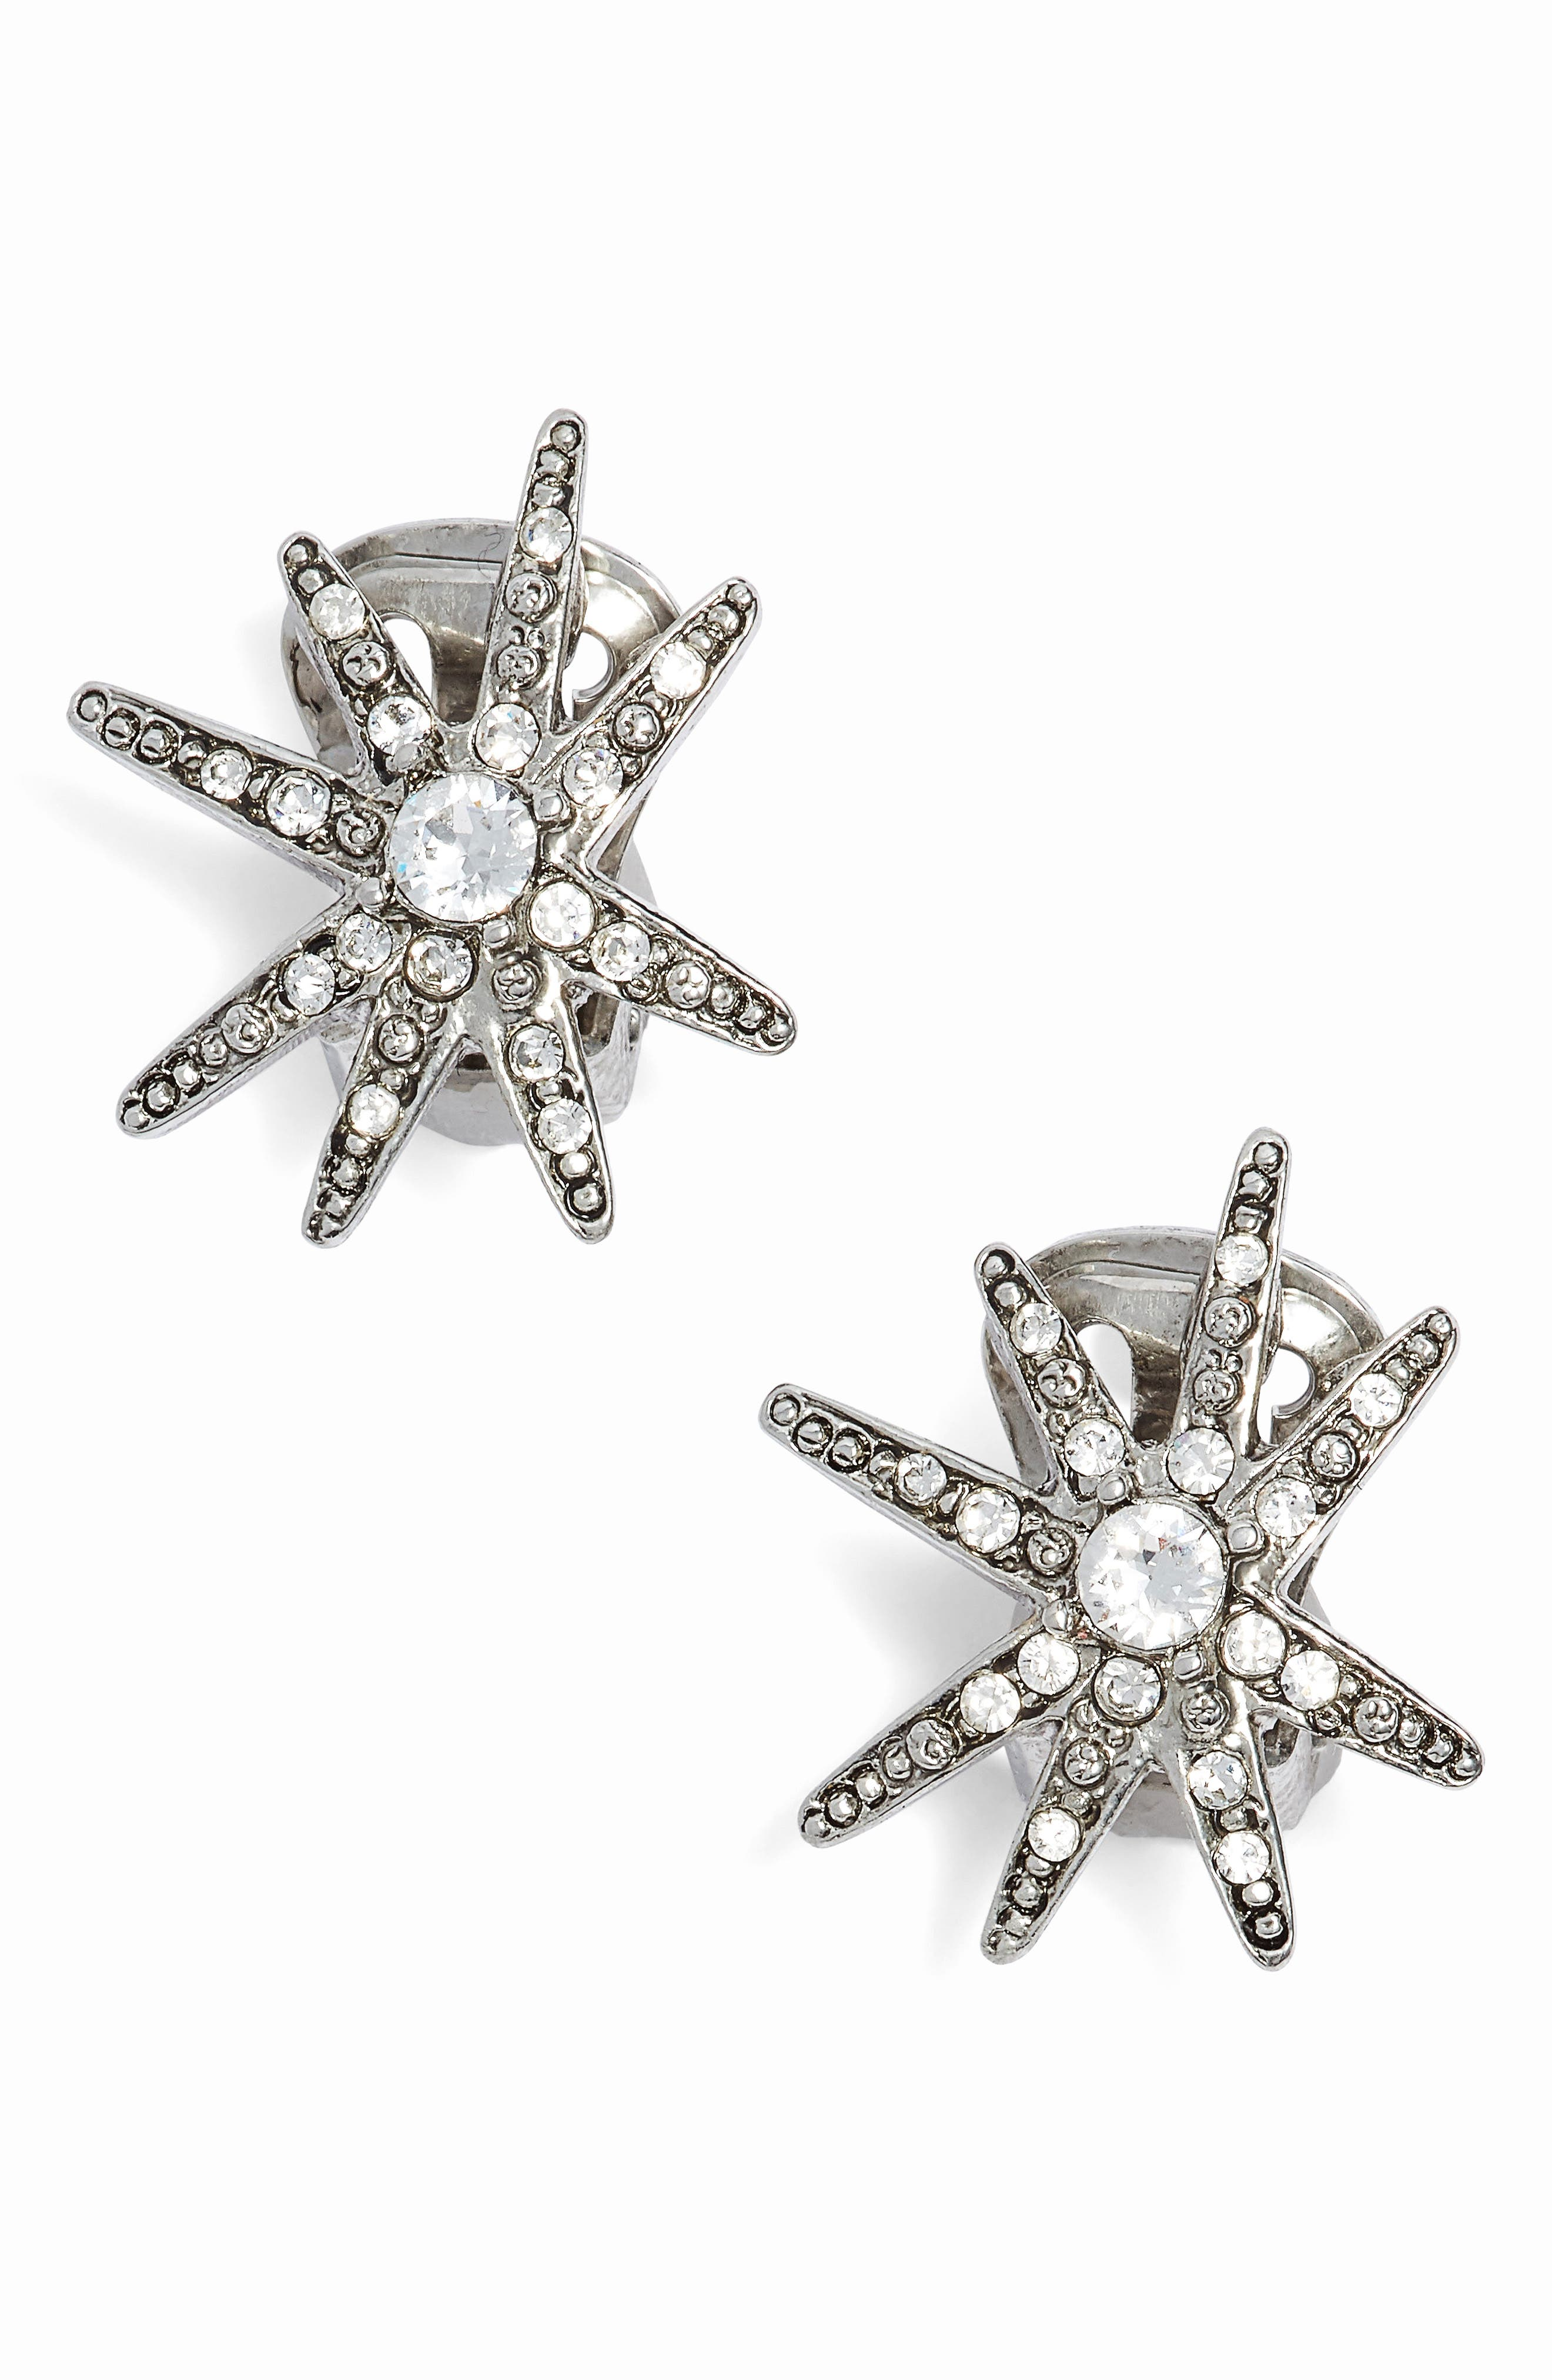 Oscar de la Renta Crystal Fireworks Stud Earrings